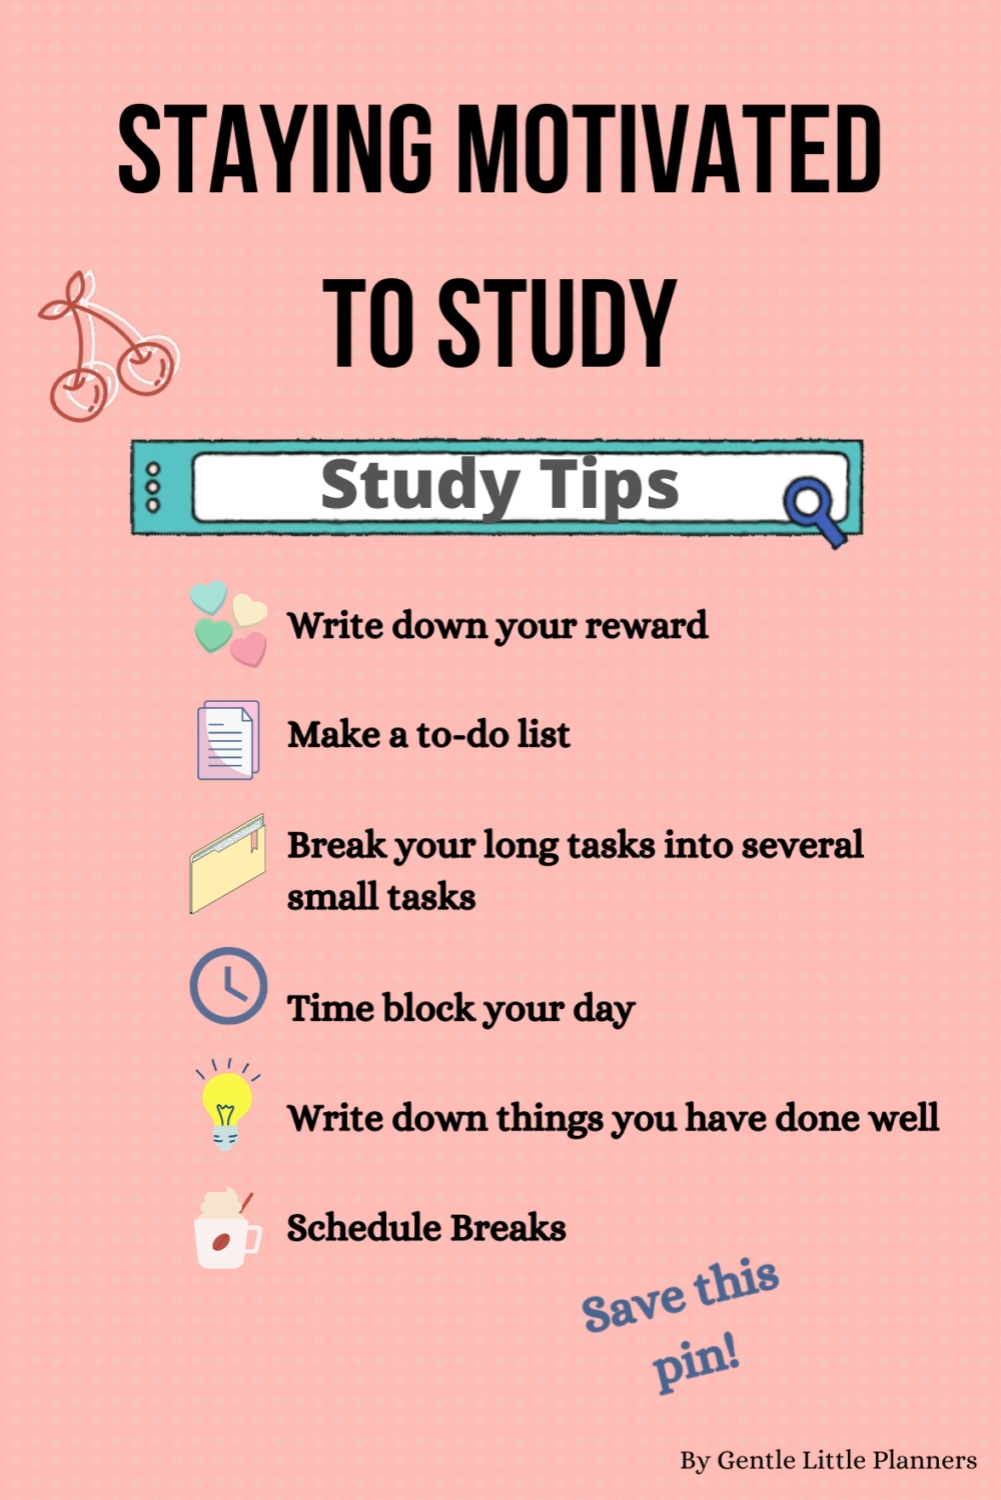 Ways To Stay Motivated To Study | Study Motivation Inspiration | Study Tips For College & University